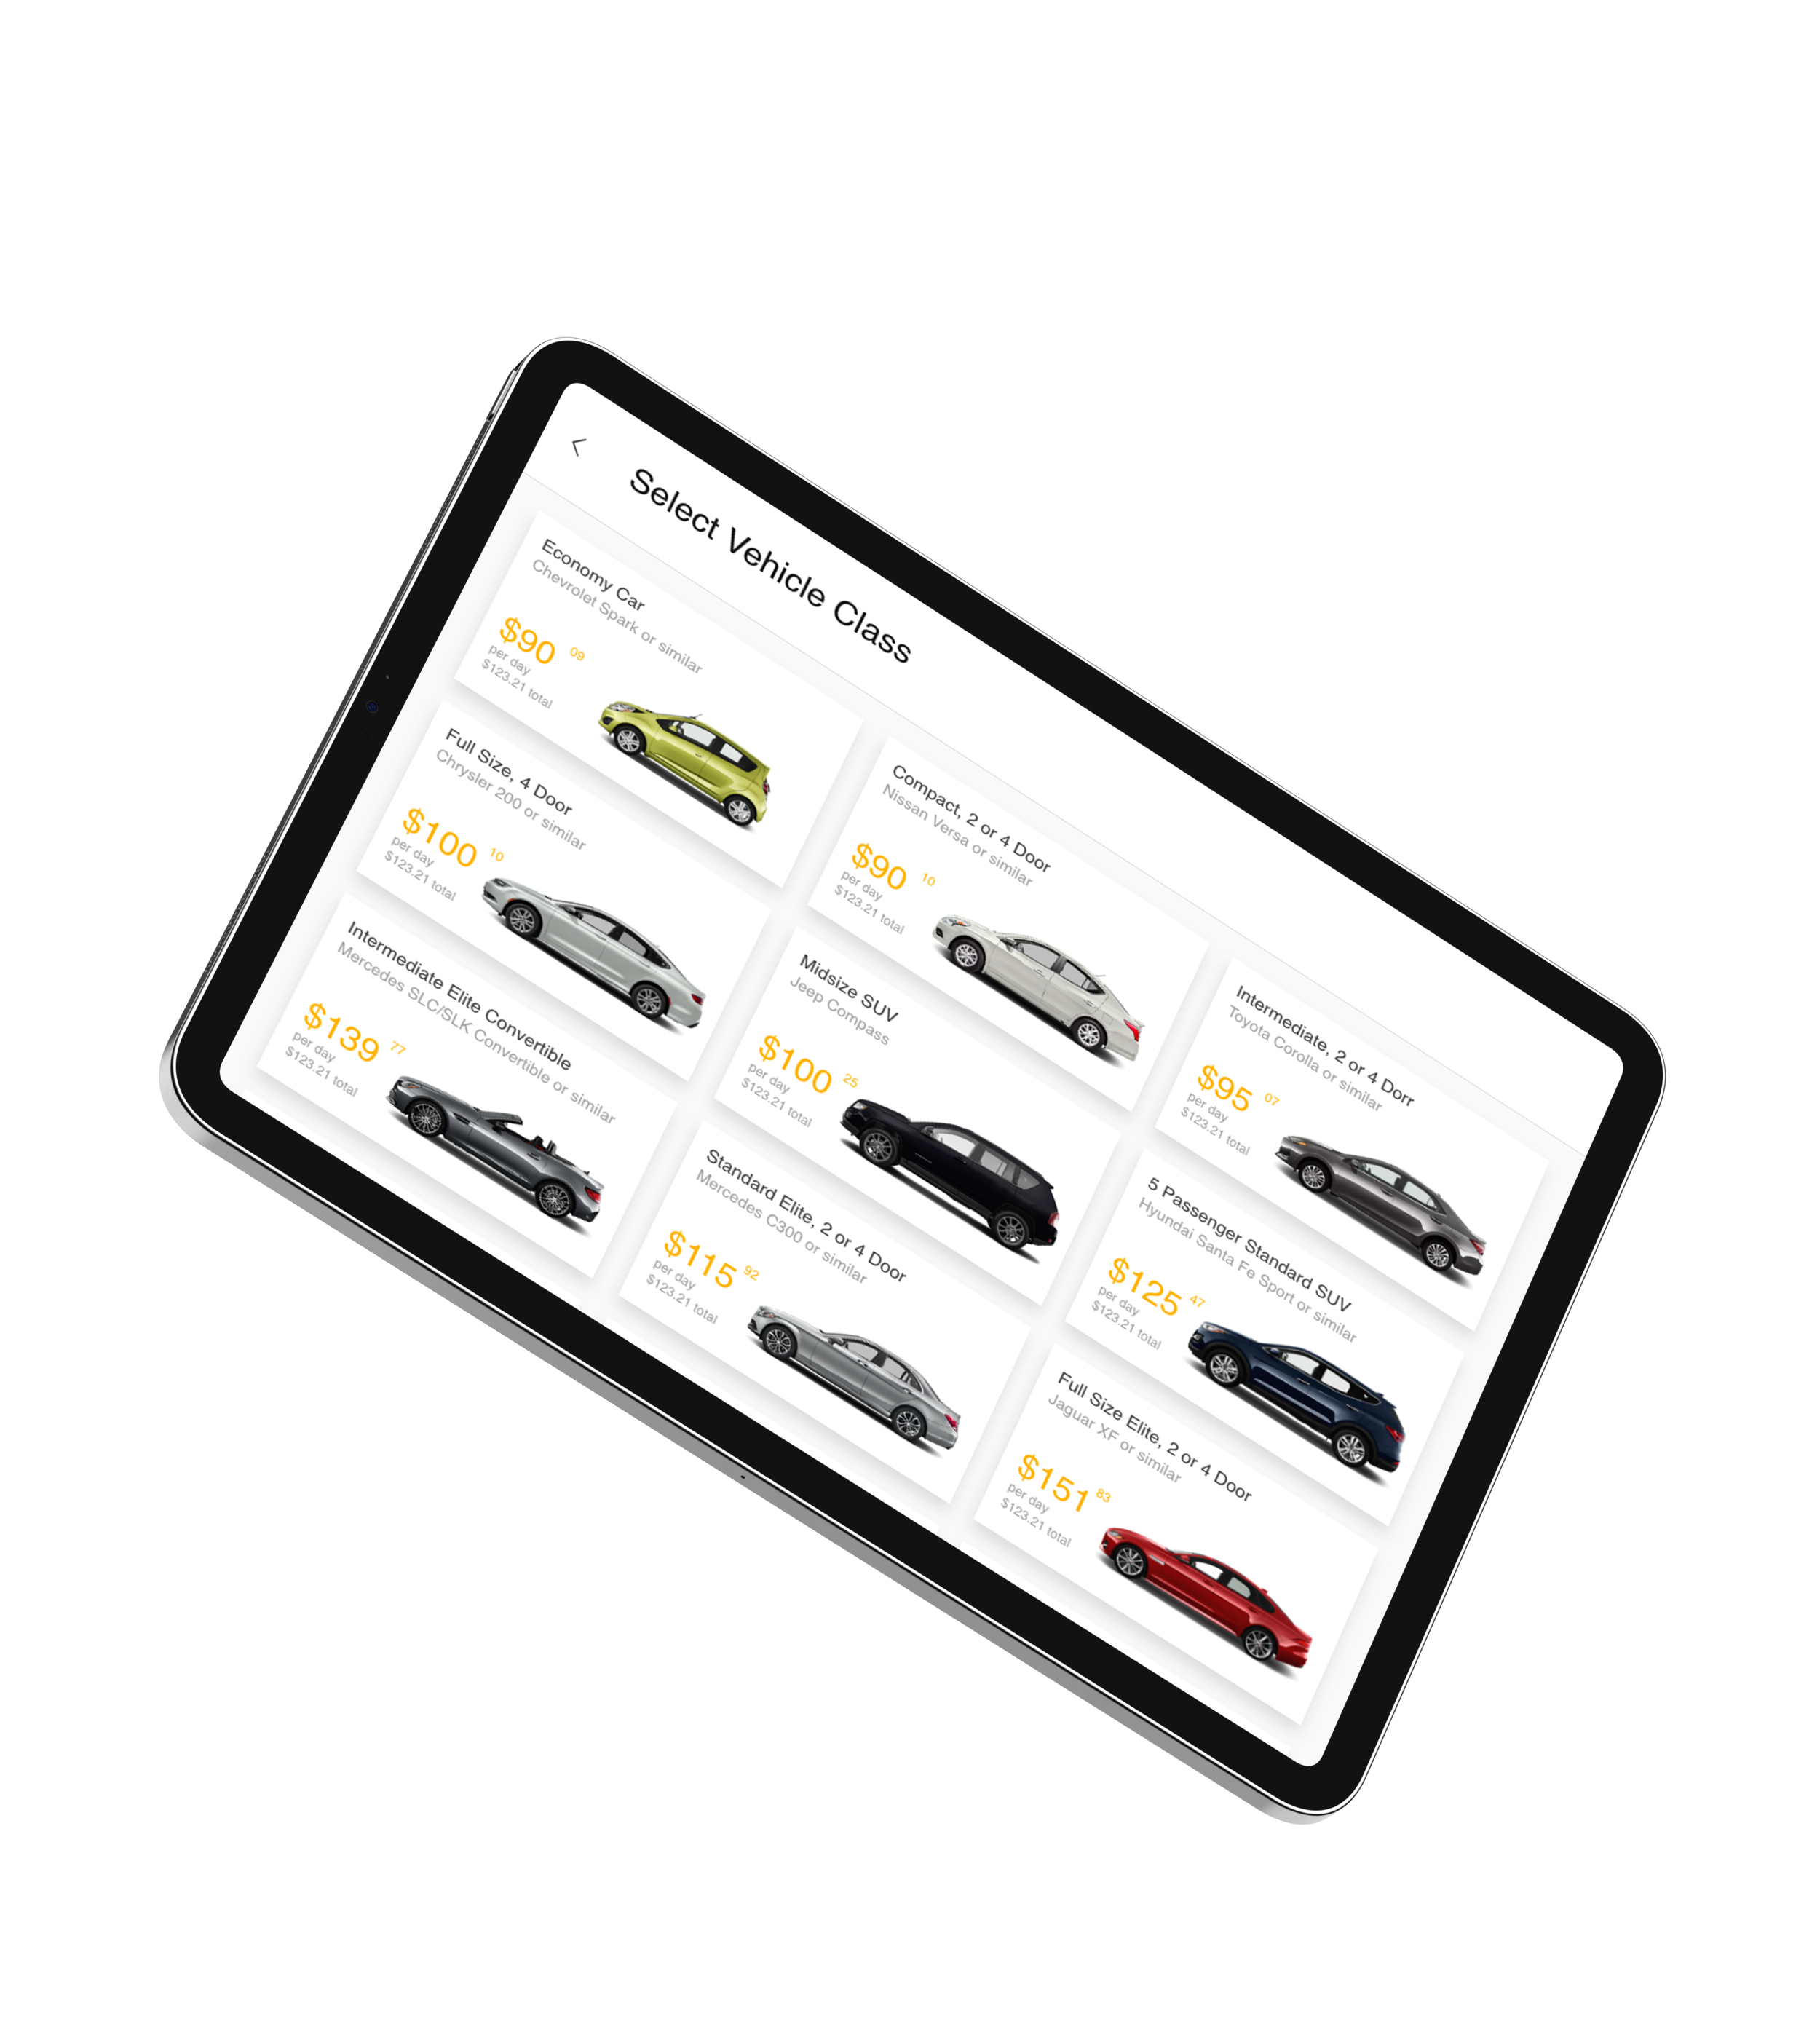 Manage your fleet easier than ever before - Case study for Hertz fleet management app.